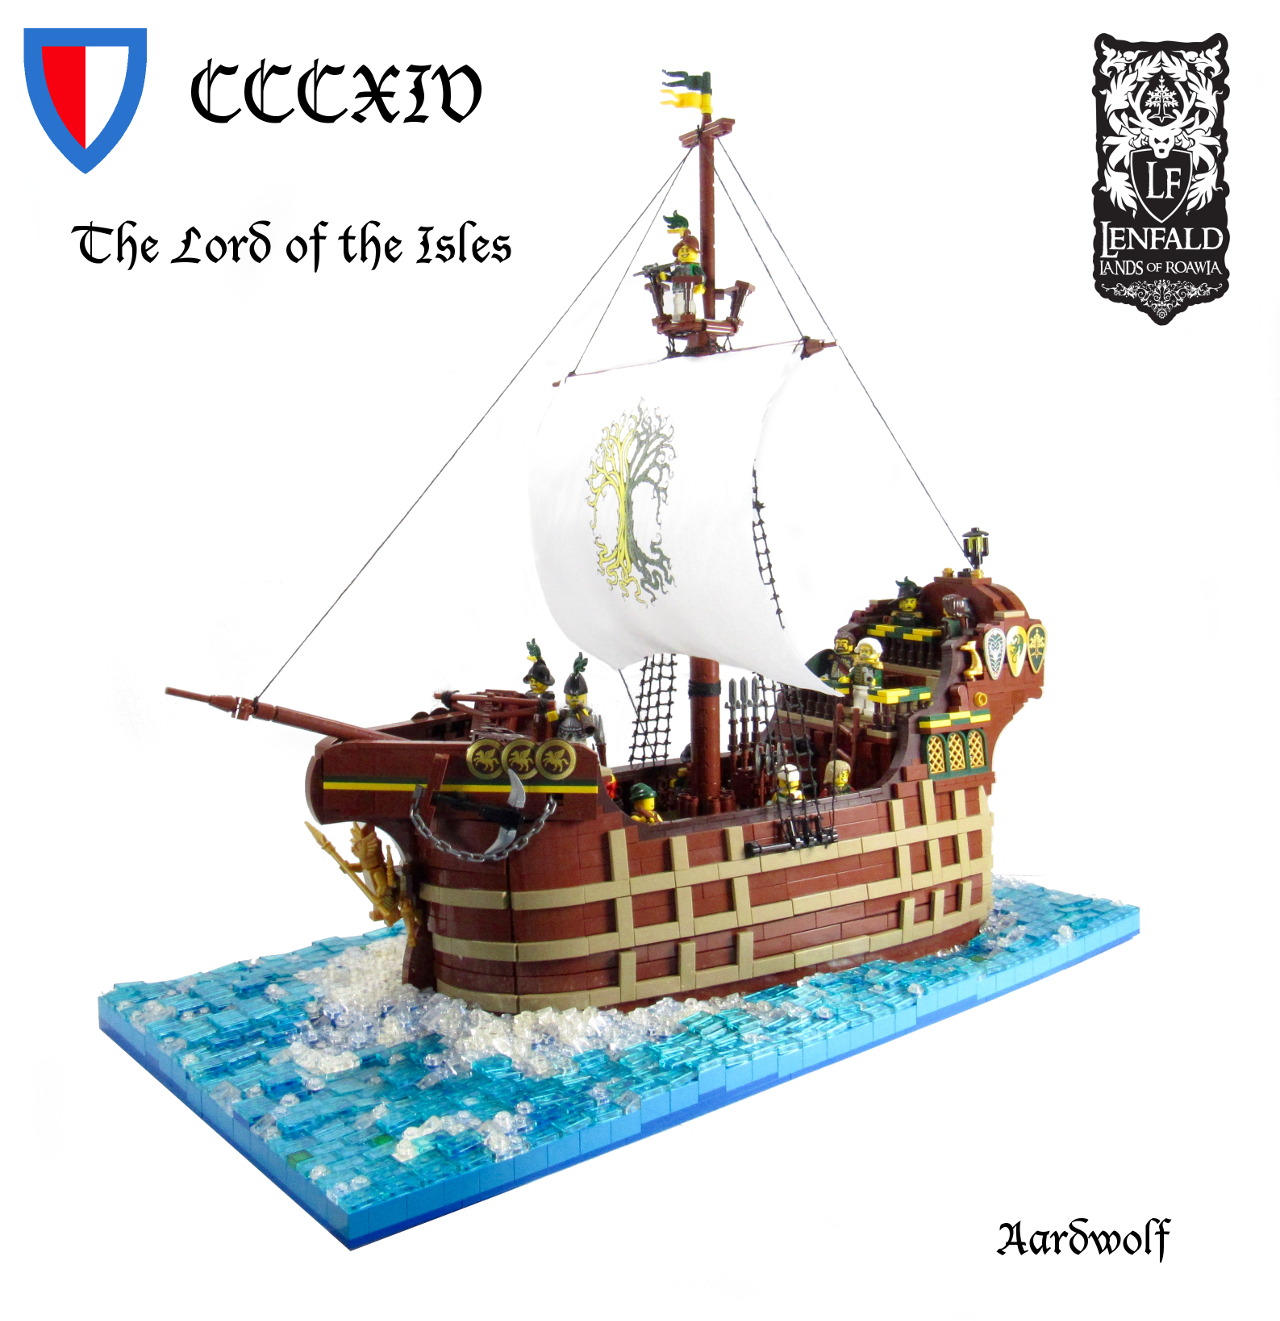 CCCXIV - The Lord of the Isles